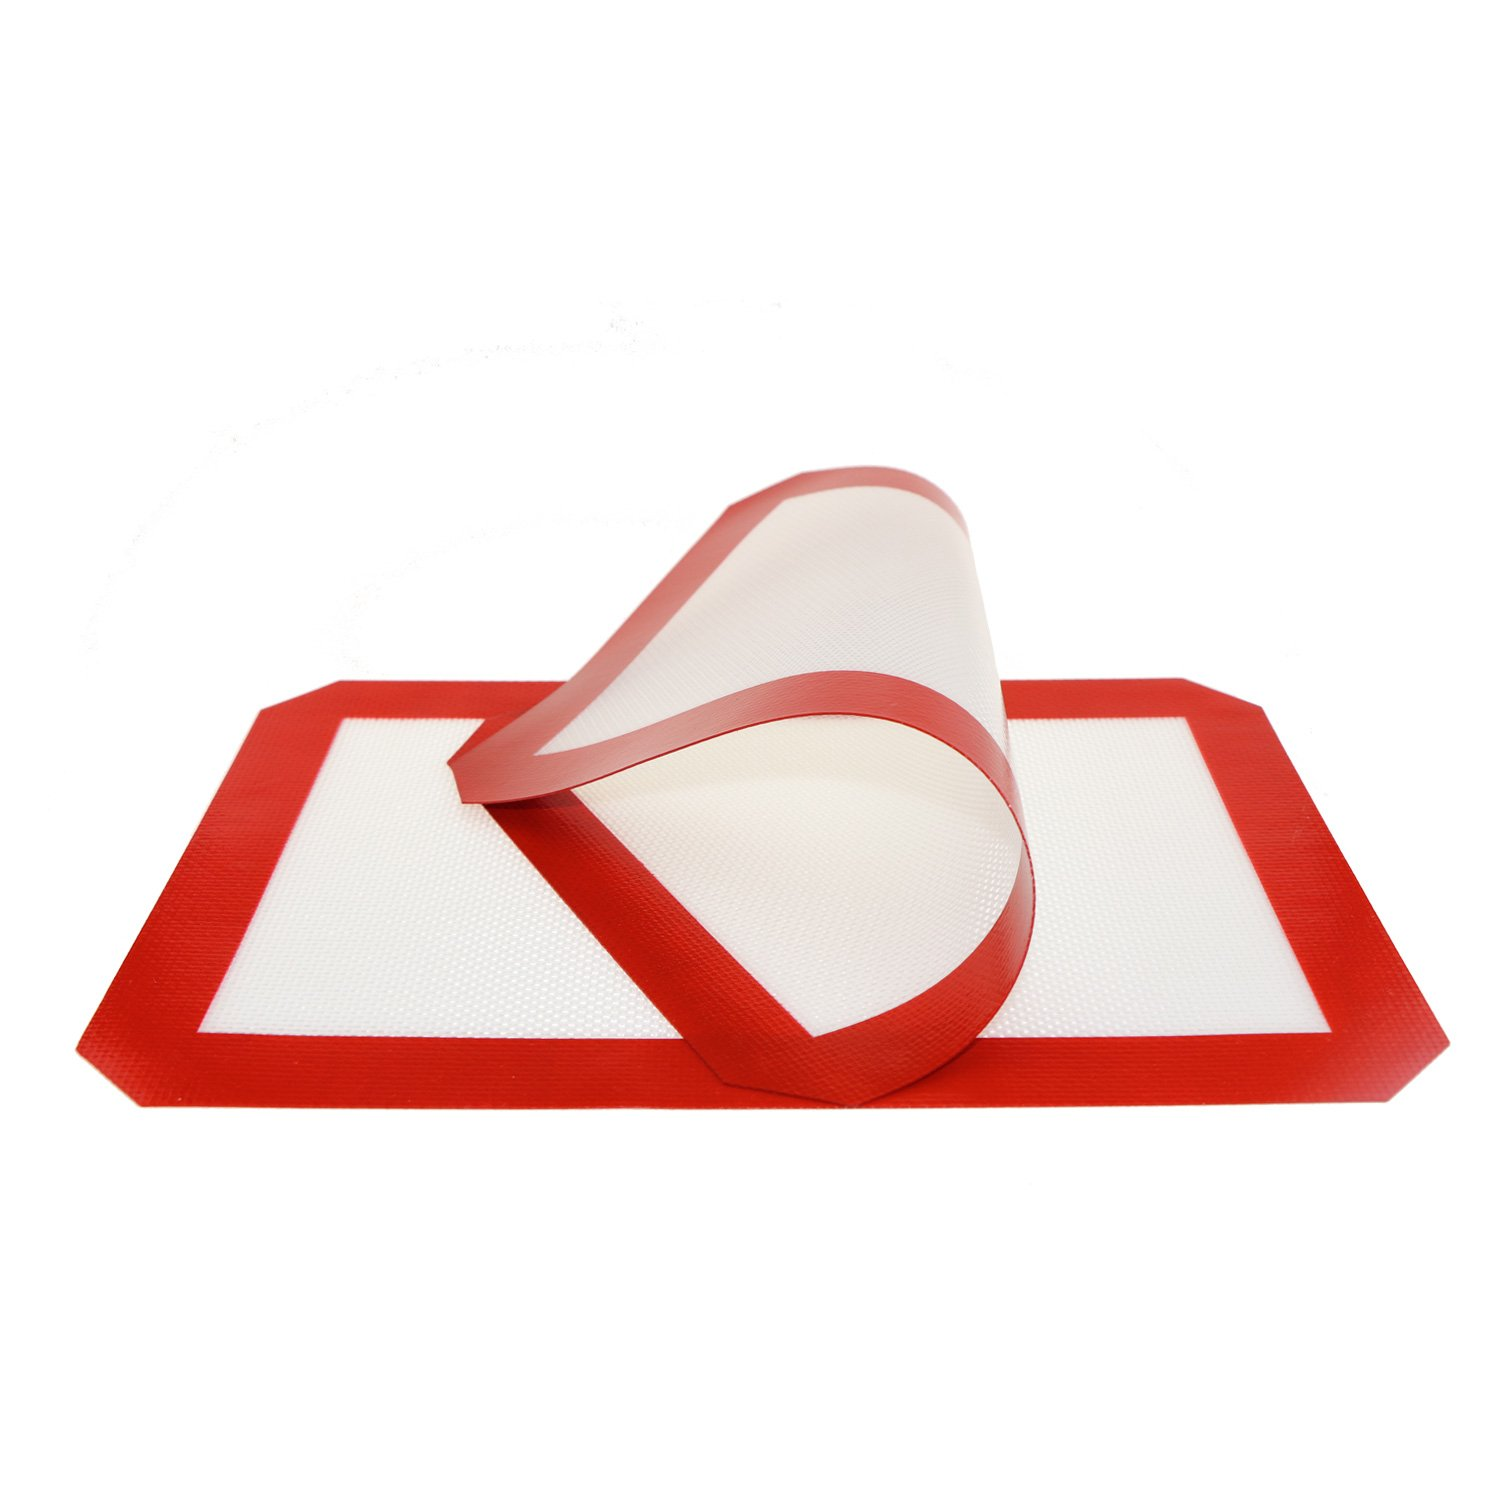 Aowecke Non-stick Silicone Baking Mat, Toaster Oven Liner, Cookie sheet, Half Sheet Size, 11-5/8'' x 16-1/2'', 2-pack(Red) (Red)